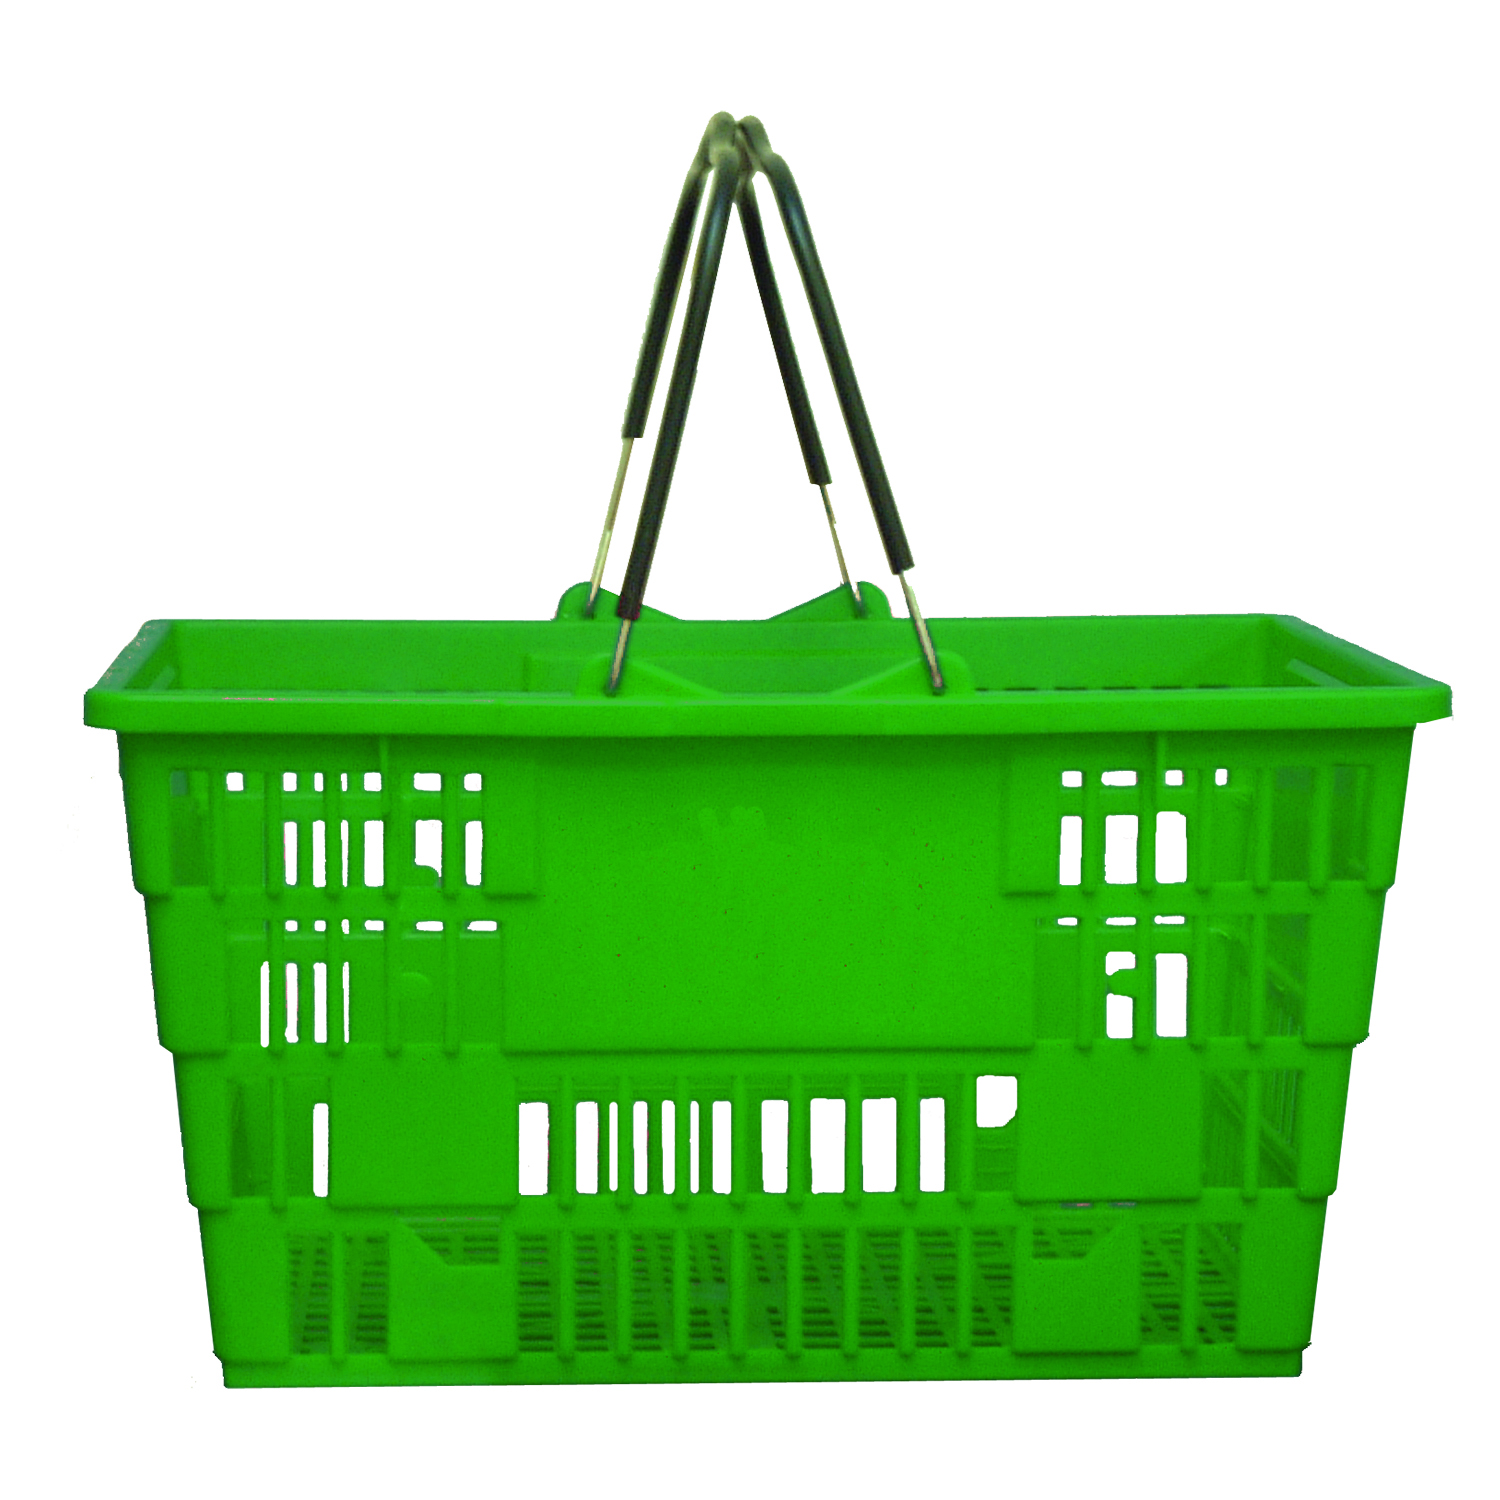 Jumbo Baskets, Green (set of 16)